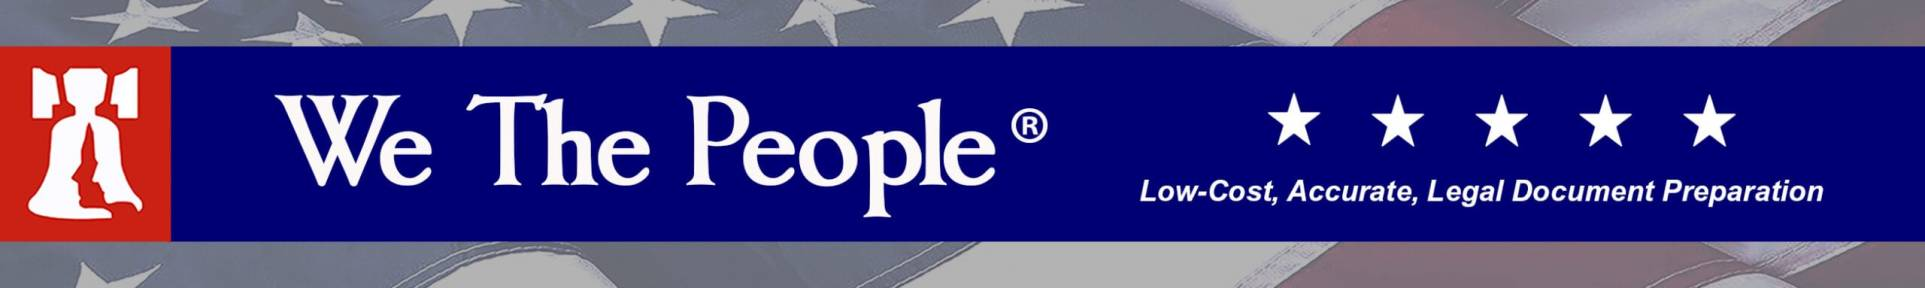 We The People USA - Legal Document Preparation